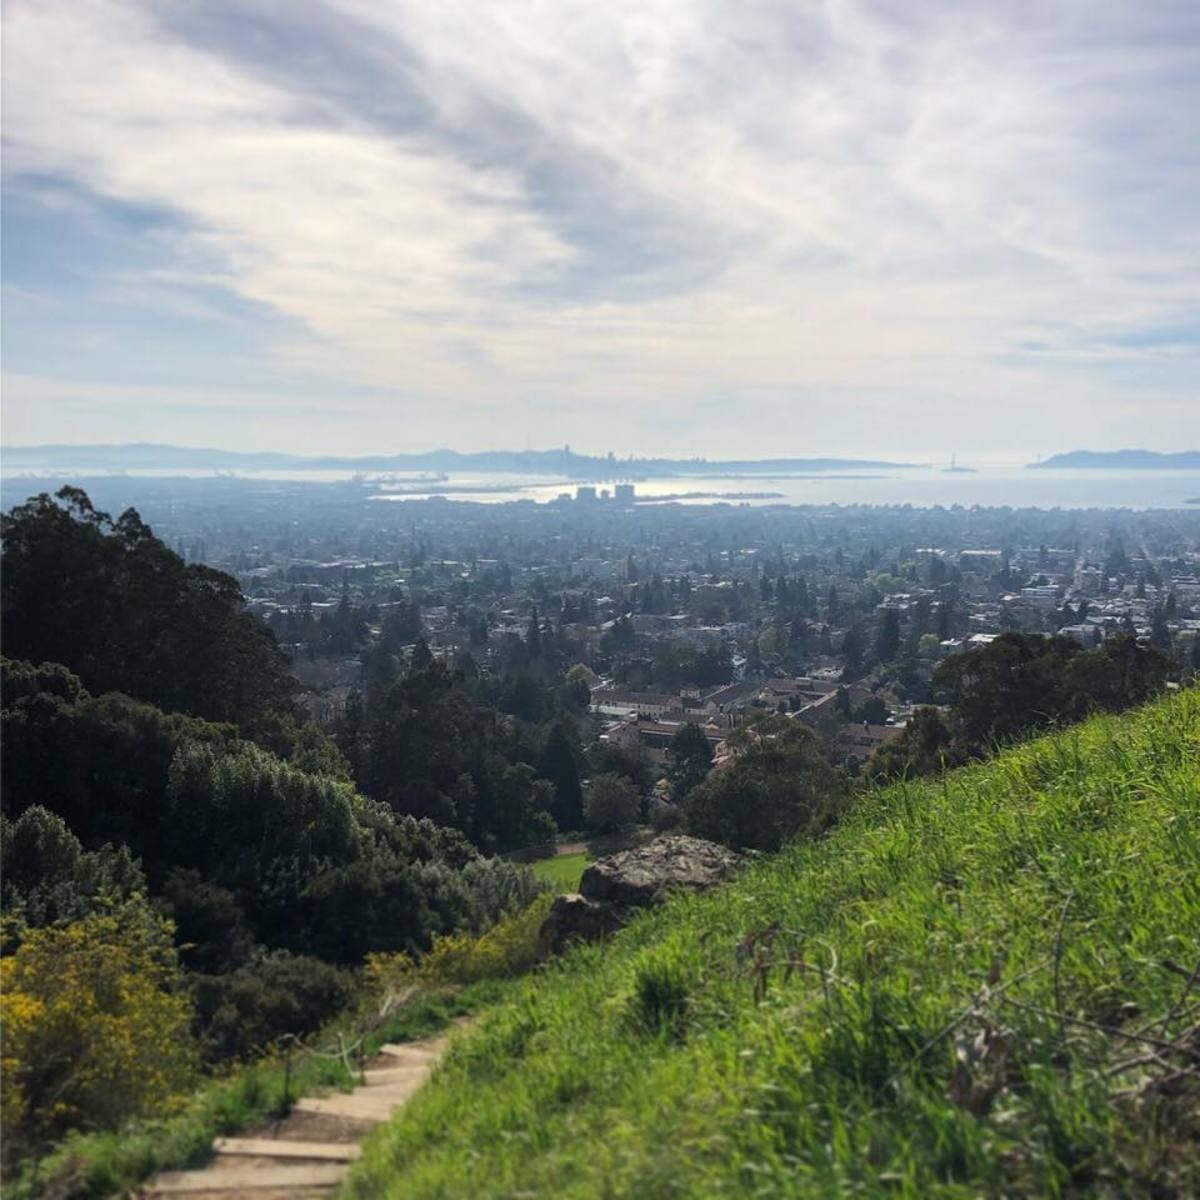 View From a Hike in the Berkeley Hills